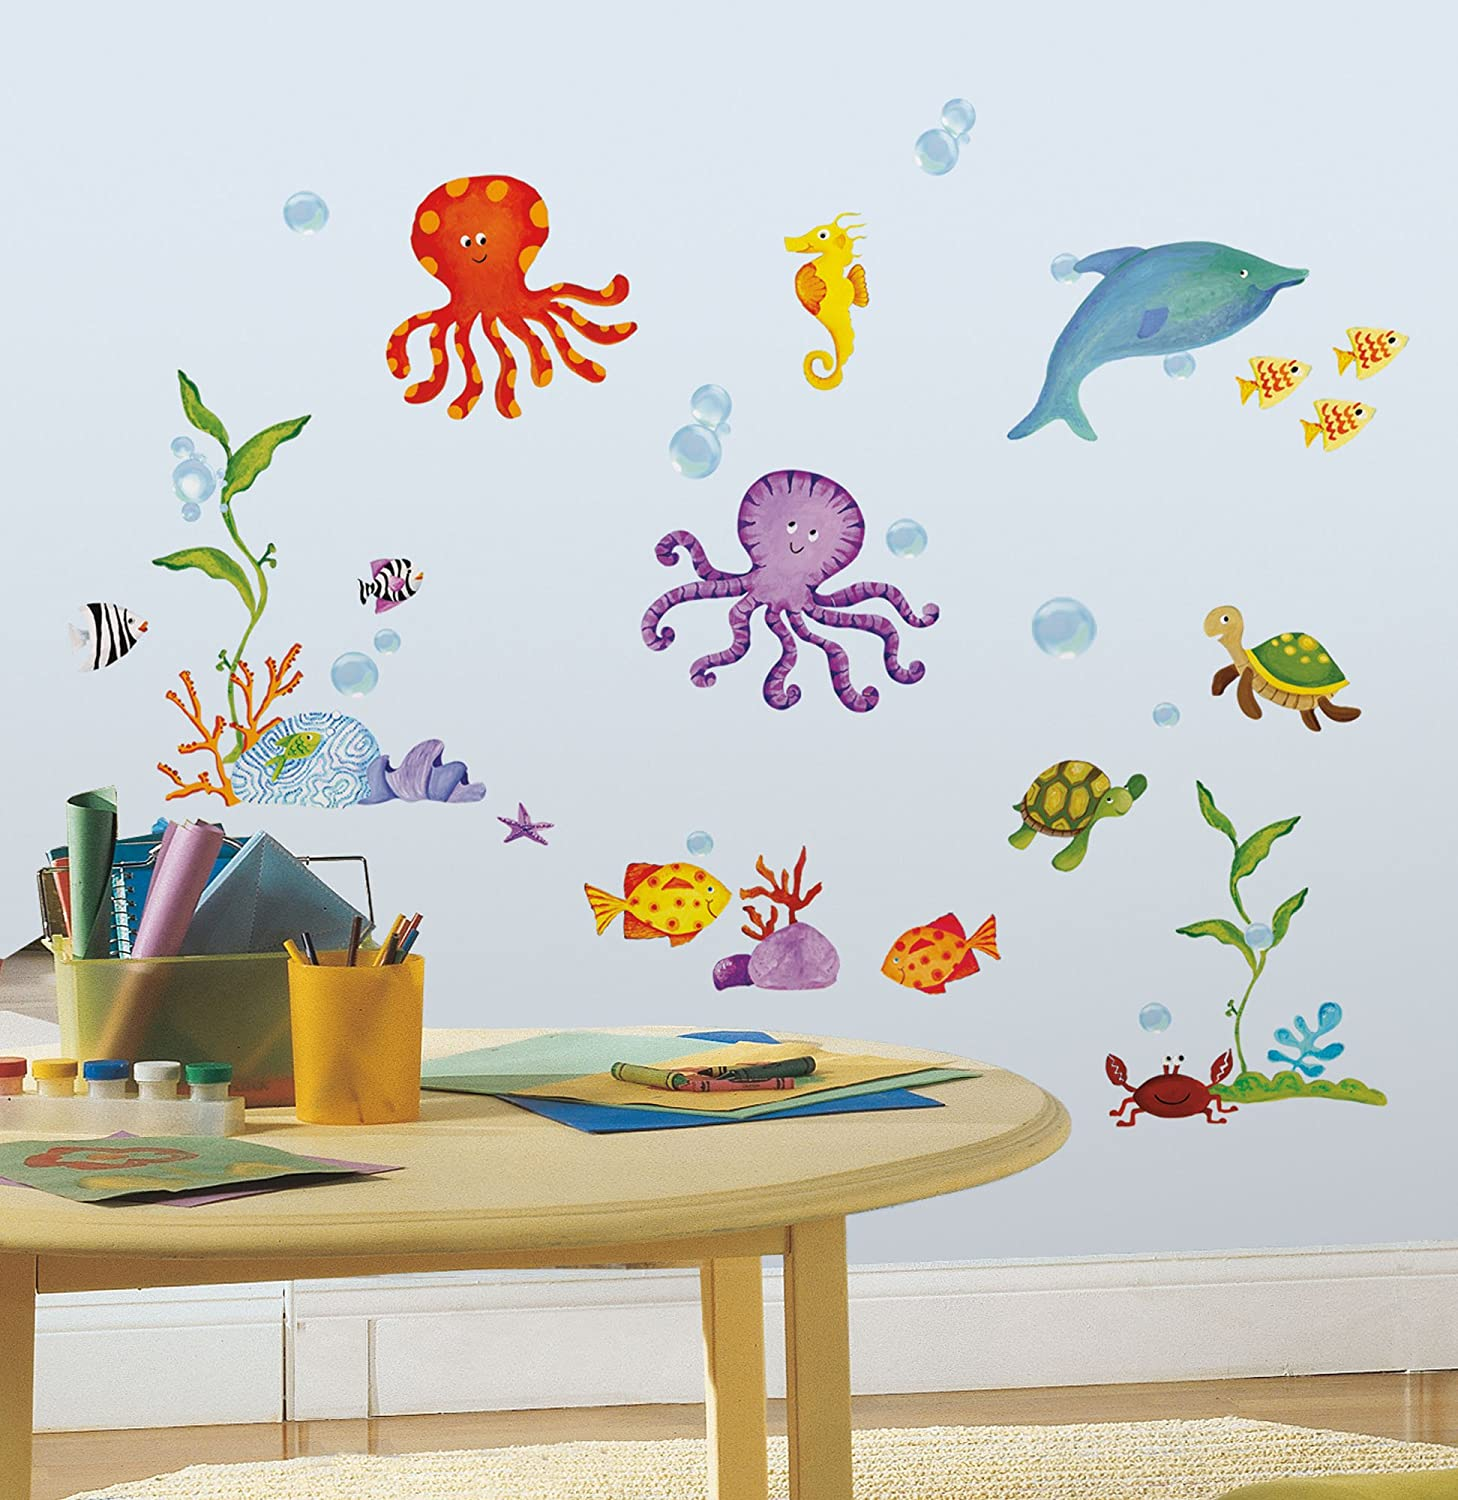 Amazon.com: RoomMates RMK1851SCS Adventures Under The Sea Peel And Stick Wall  Decals: Home Improvement Part 4